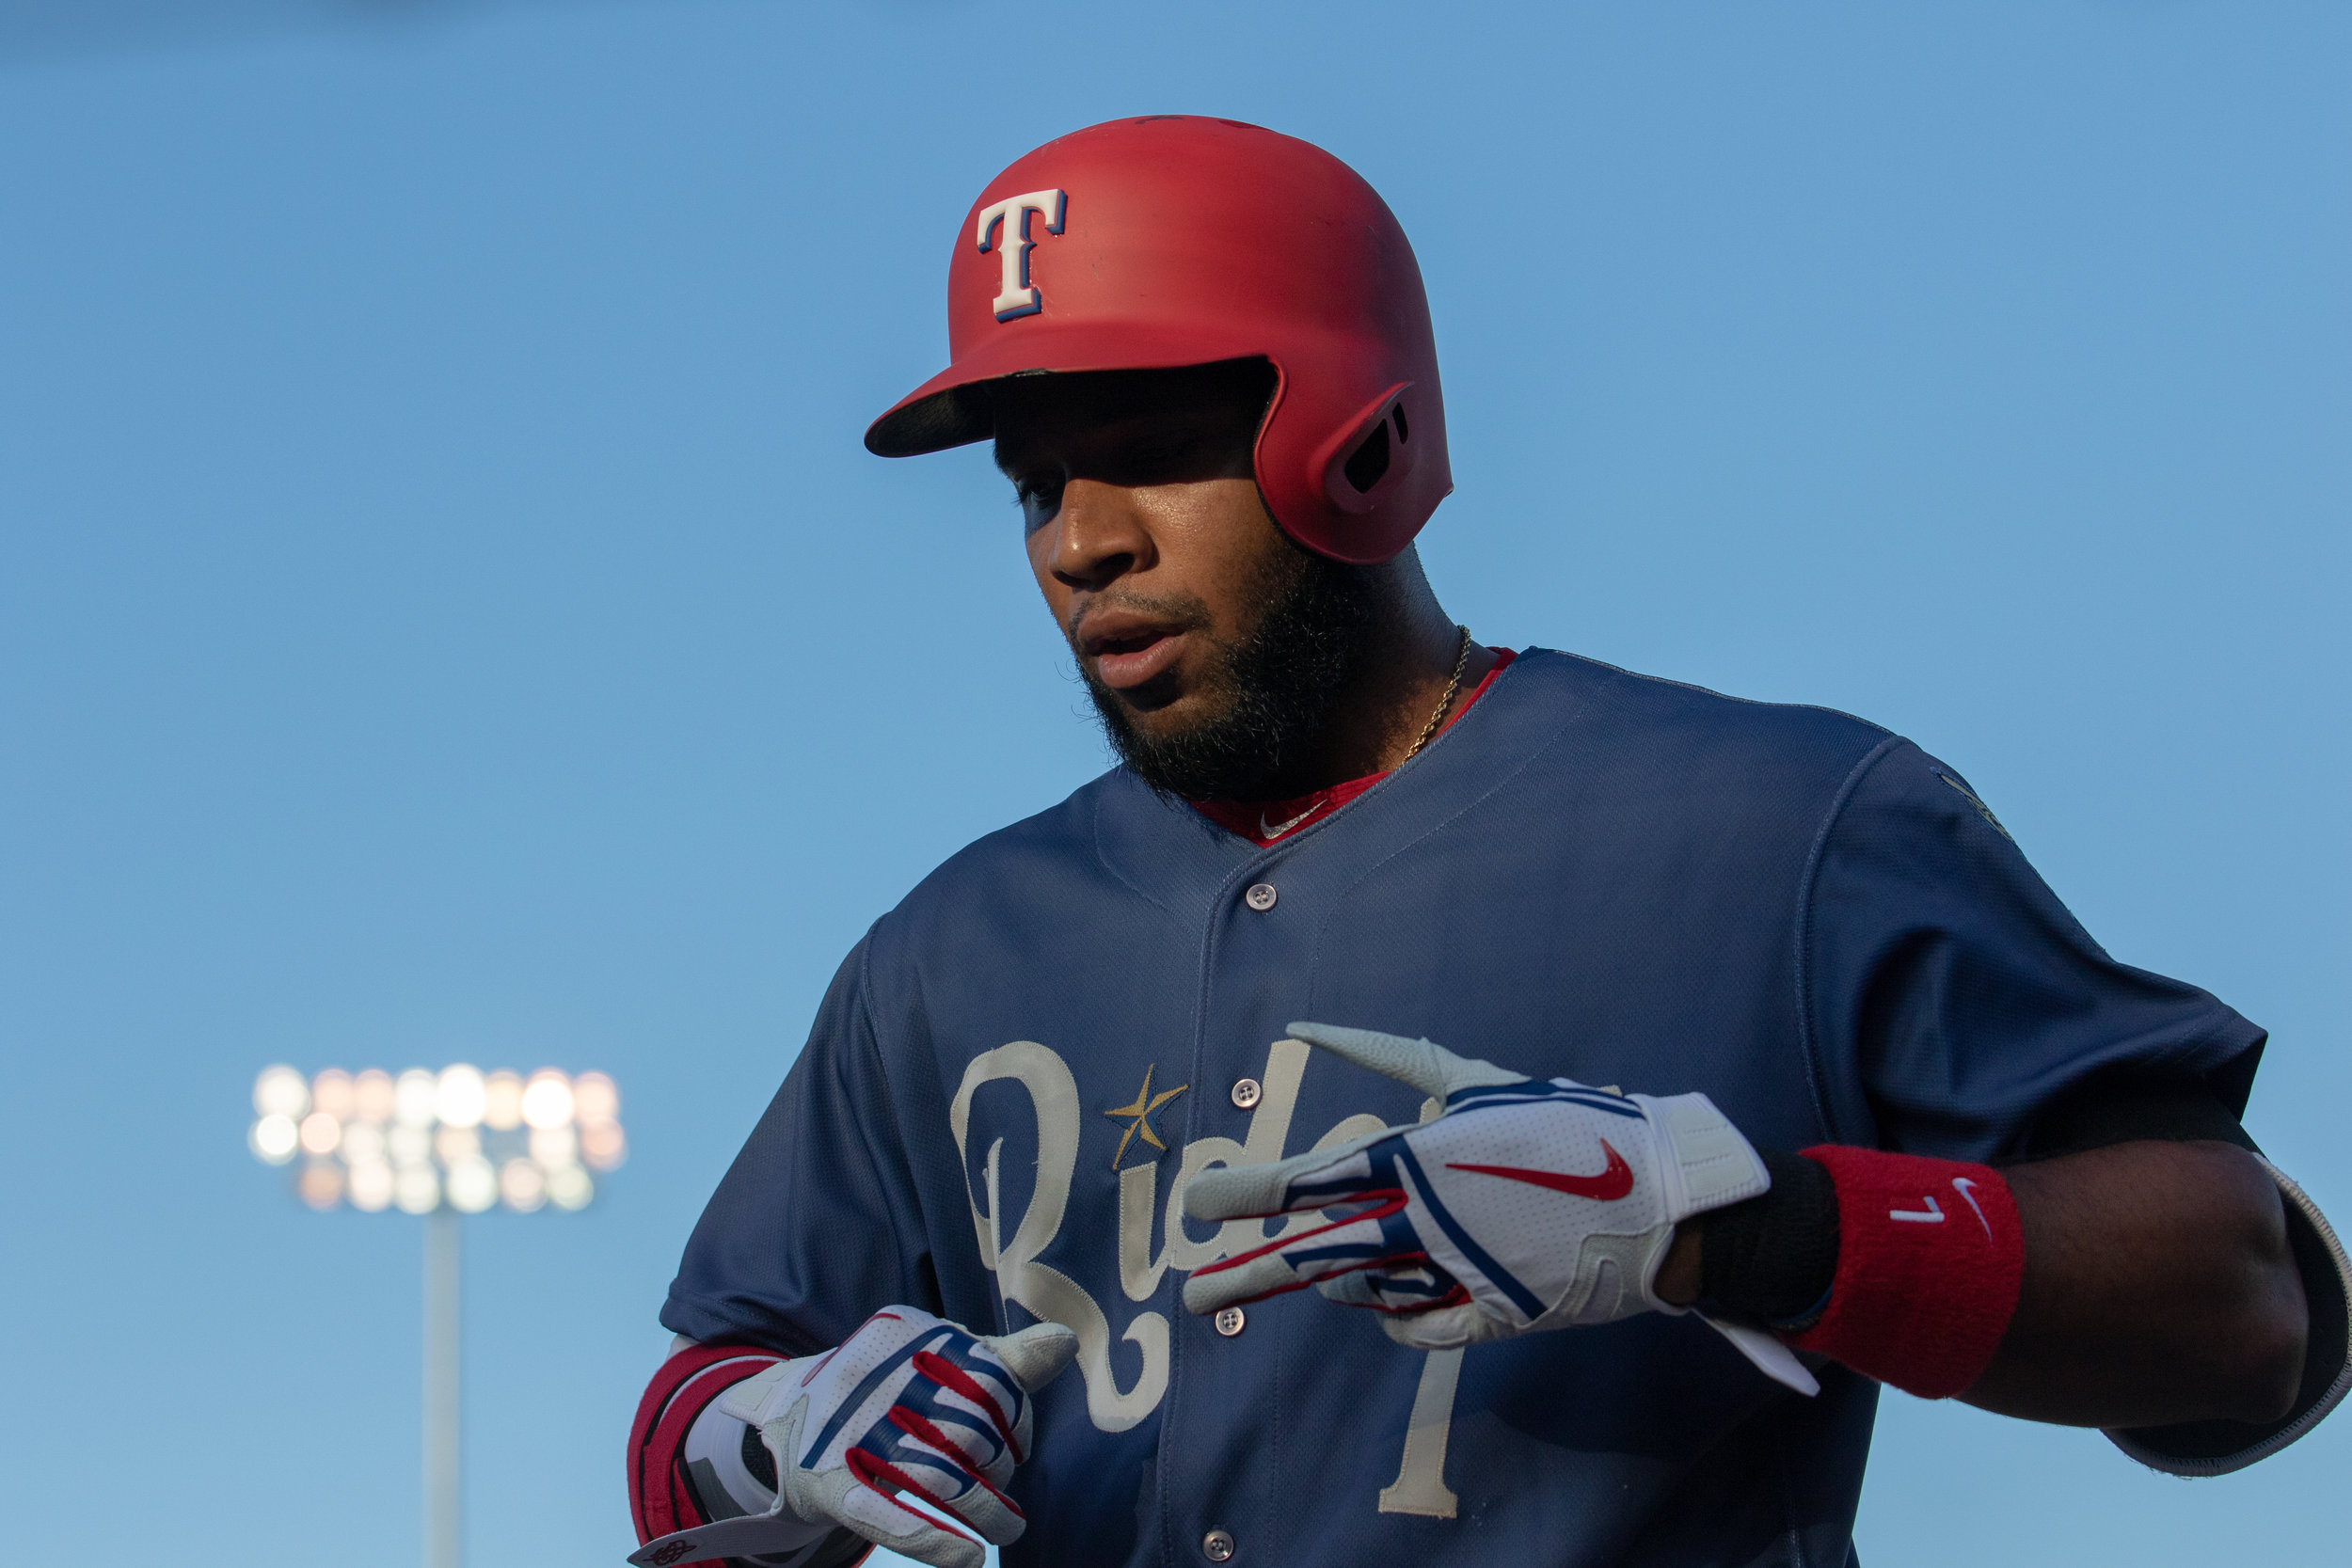 Elvis Andrus walks into the dugout while playing for the Rough Riders on June 14, 2018.